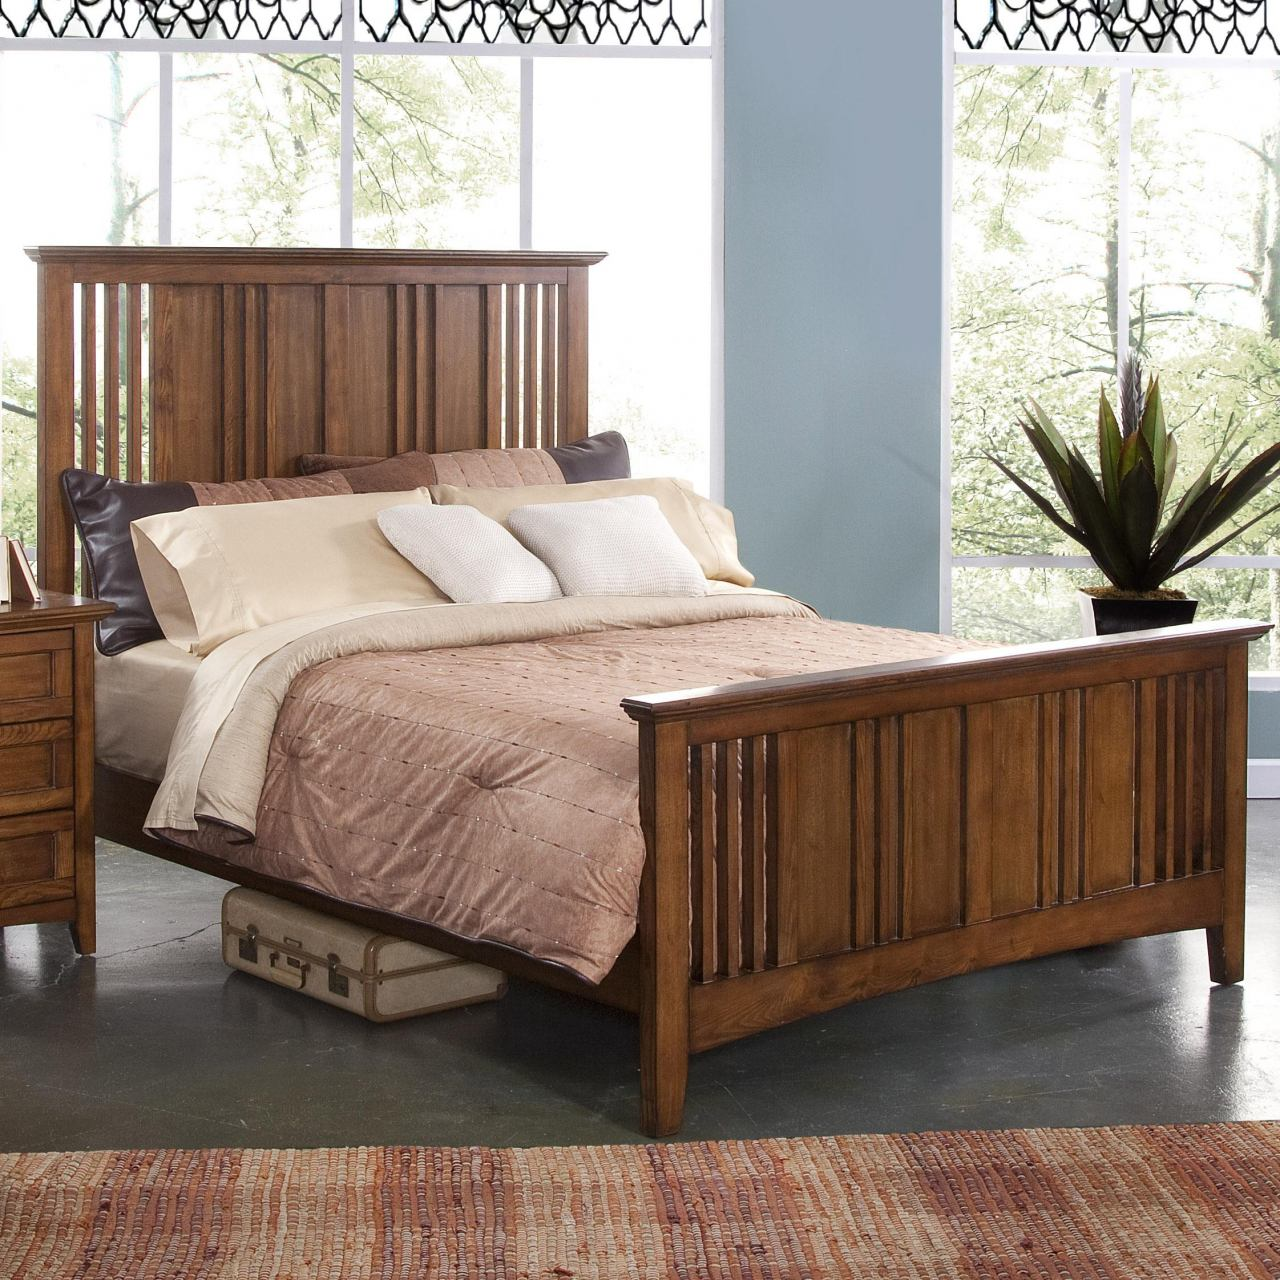 New Classic Logan California King Panel Bed in Spice 00-100-220